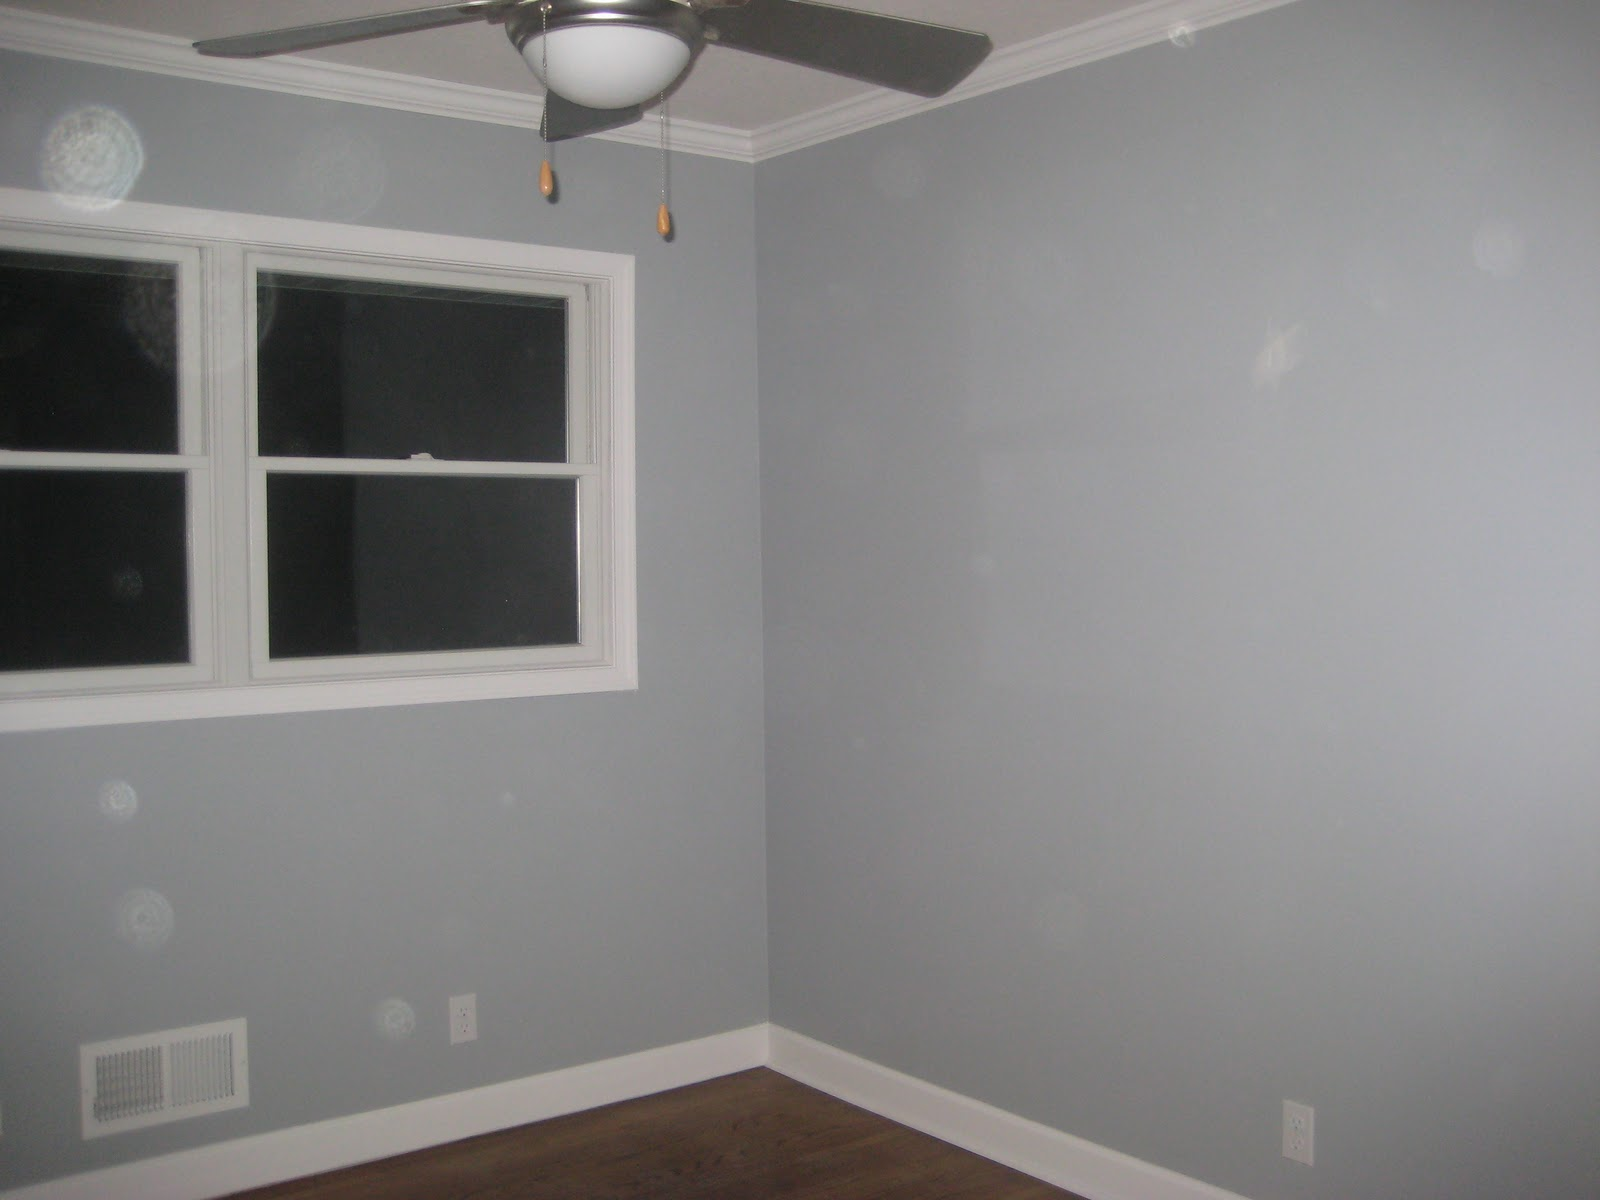 Monorail silver by sherwin williams inspiration for new for Sherwin williams silver paint colors